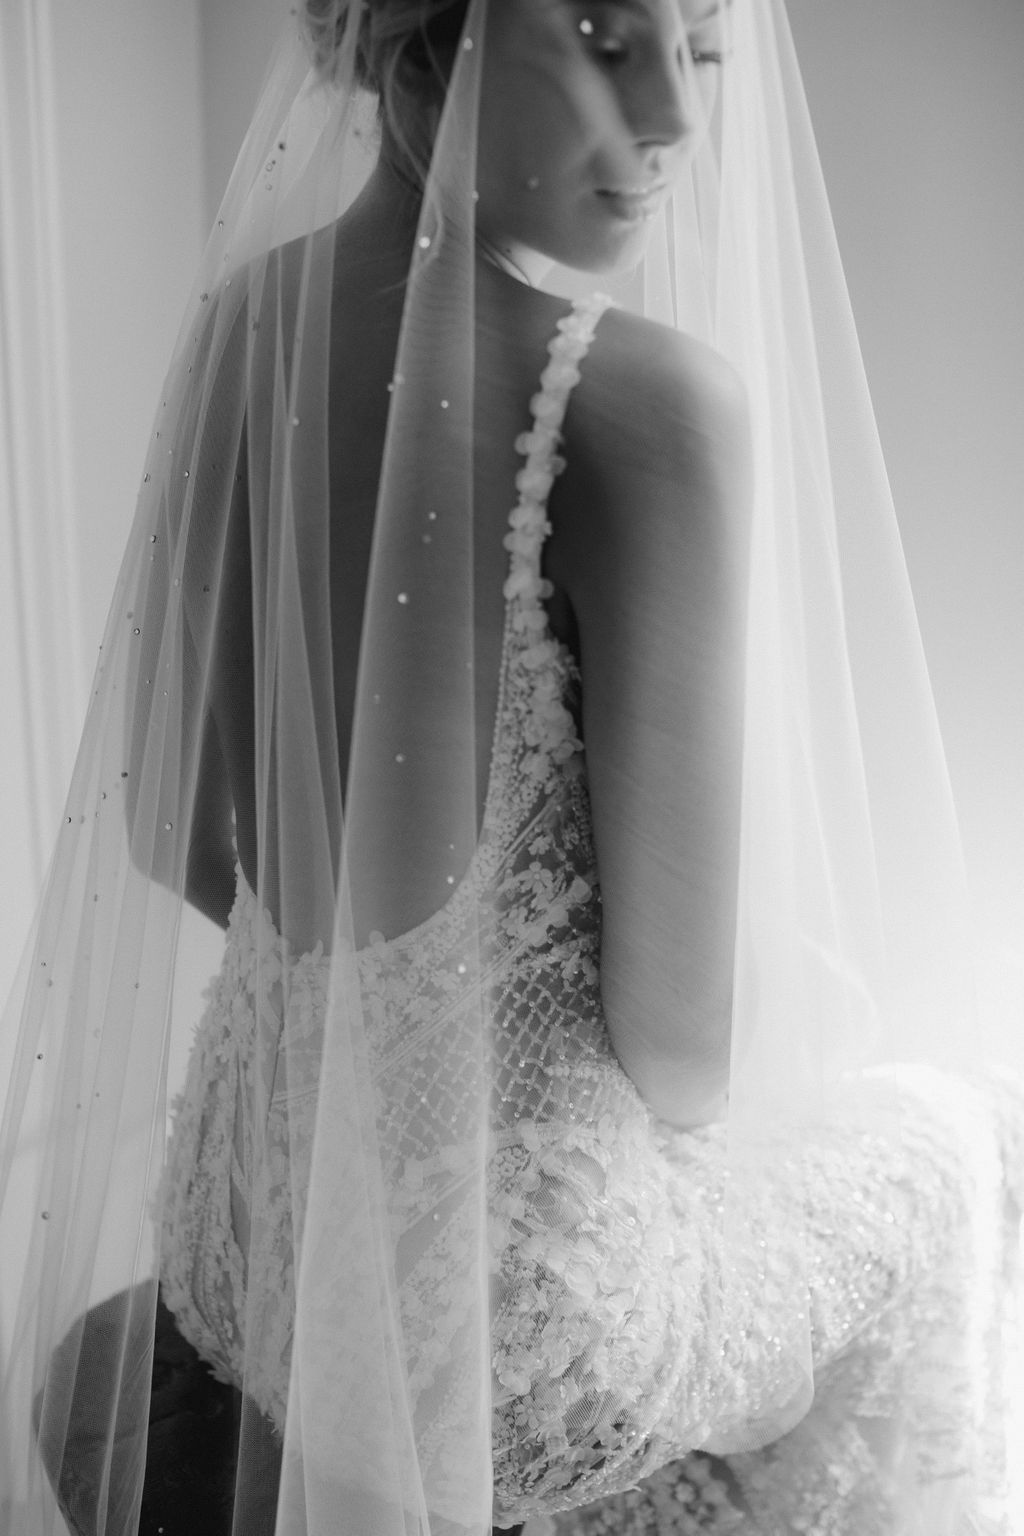 Our Guide To Bridal Veils - Veil by Tania Maras Bridal - LOVE FIND CO.